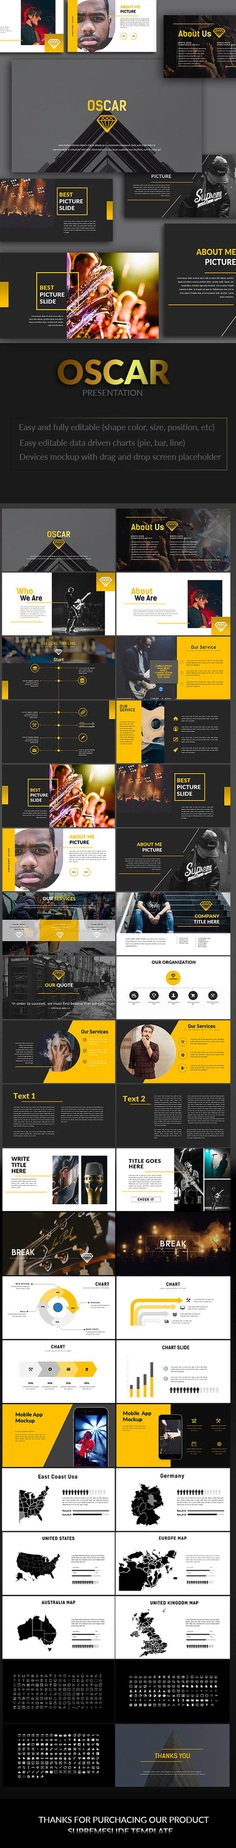 Oscar Powerpoint Template - graphicriver.net Item for Sale